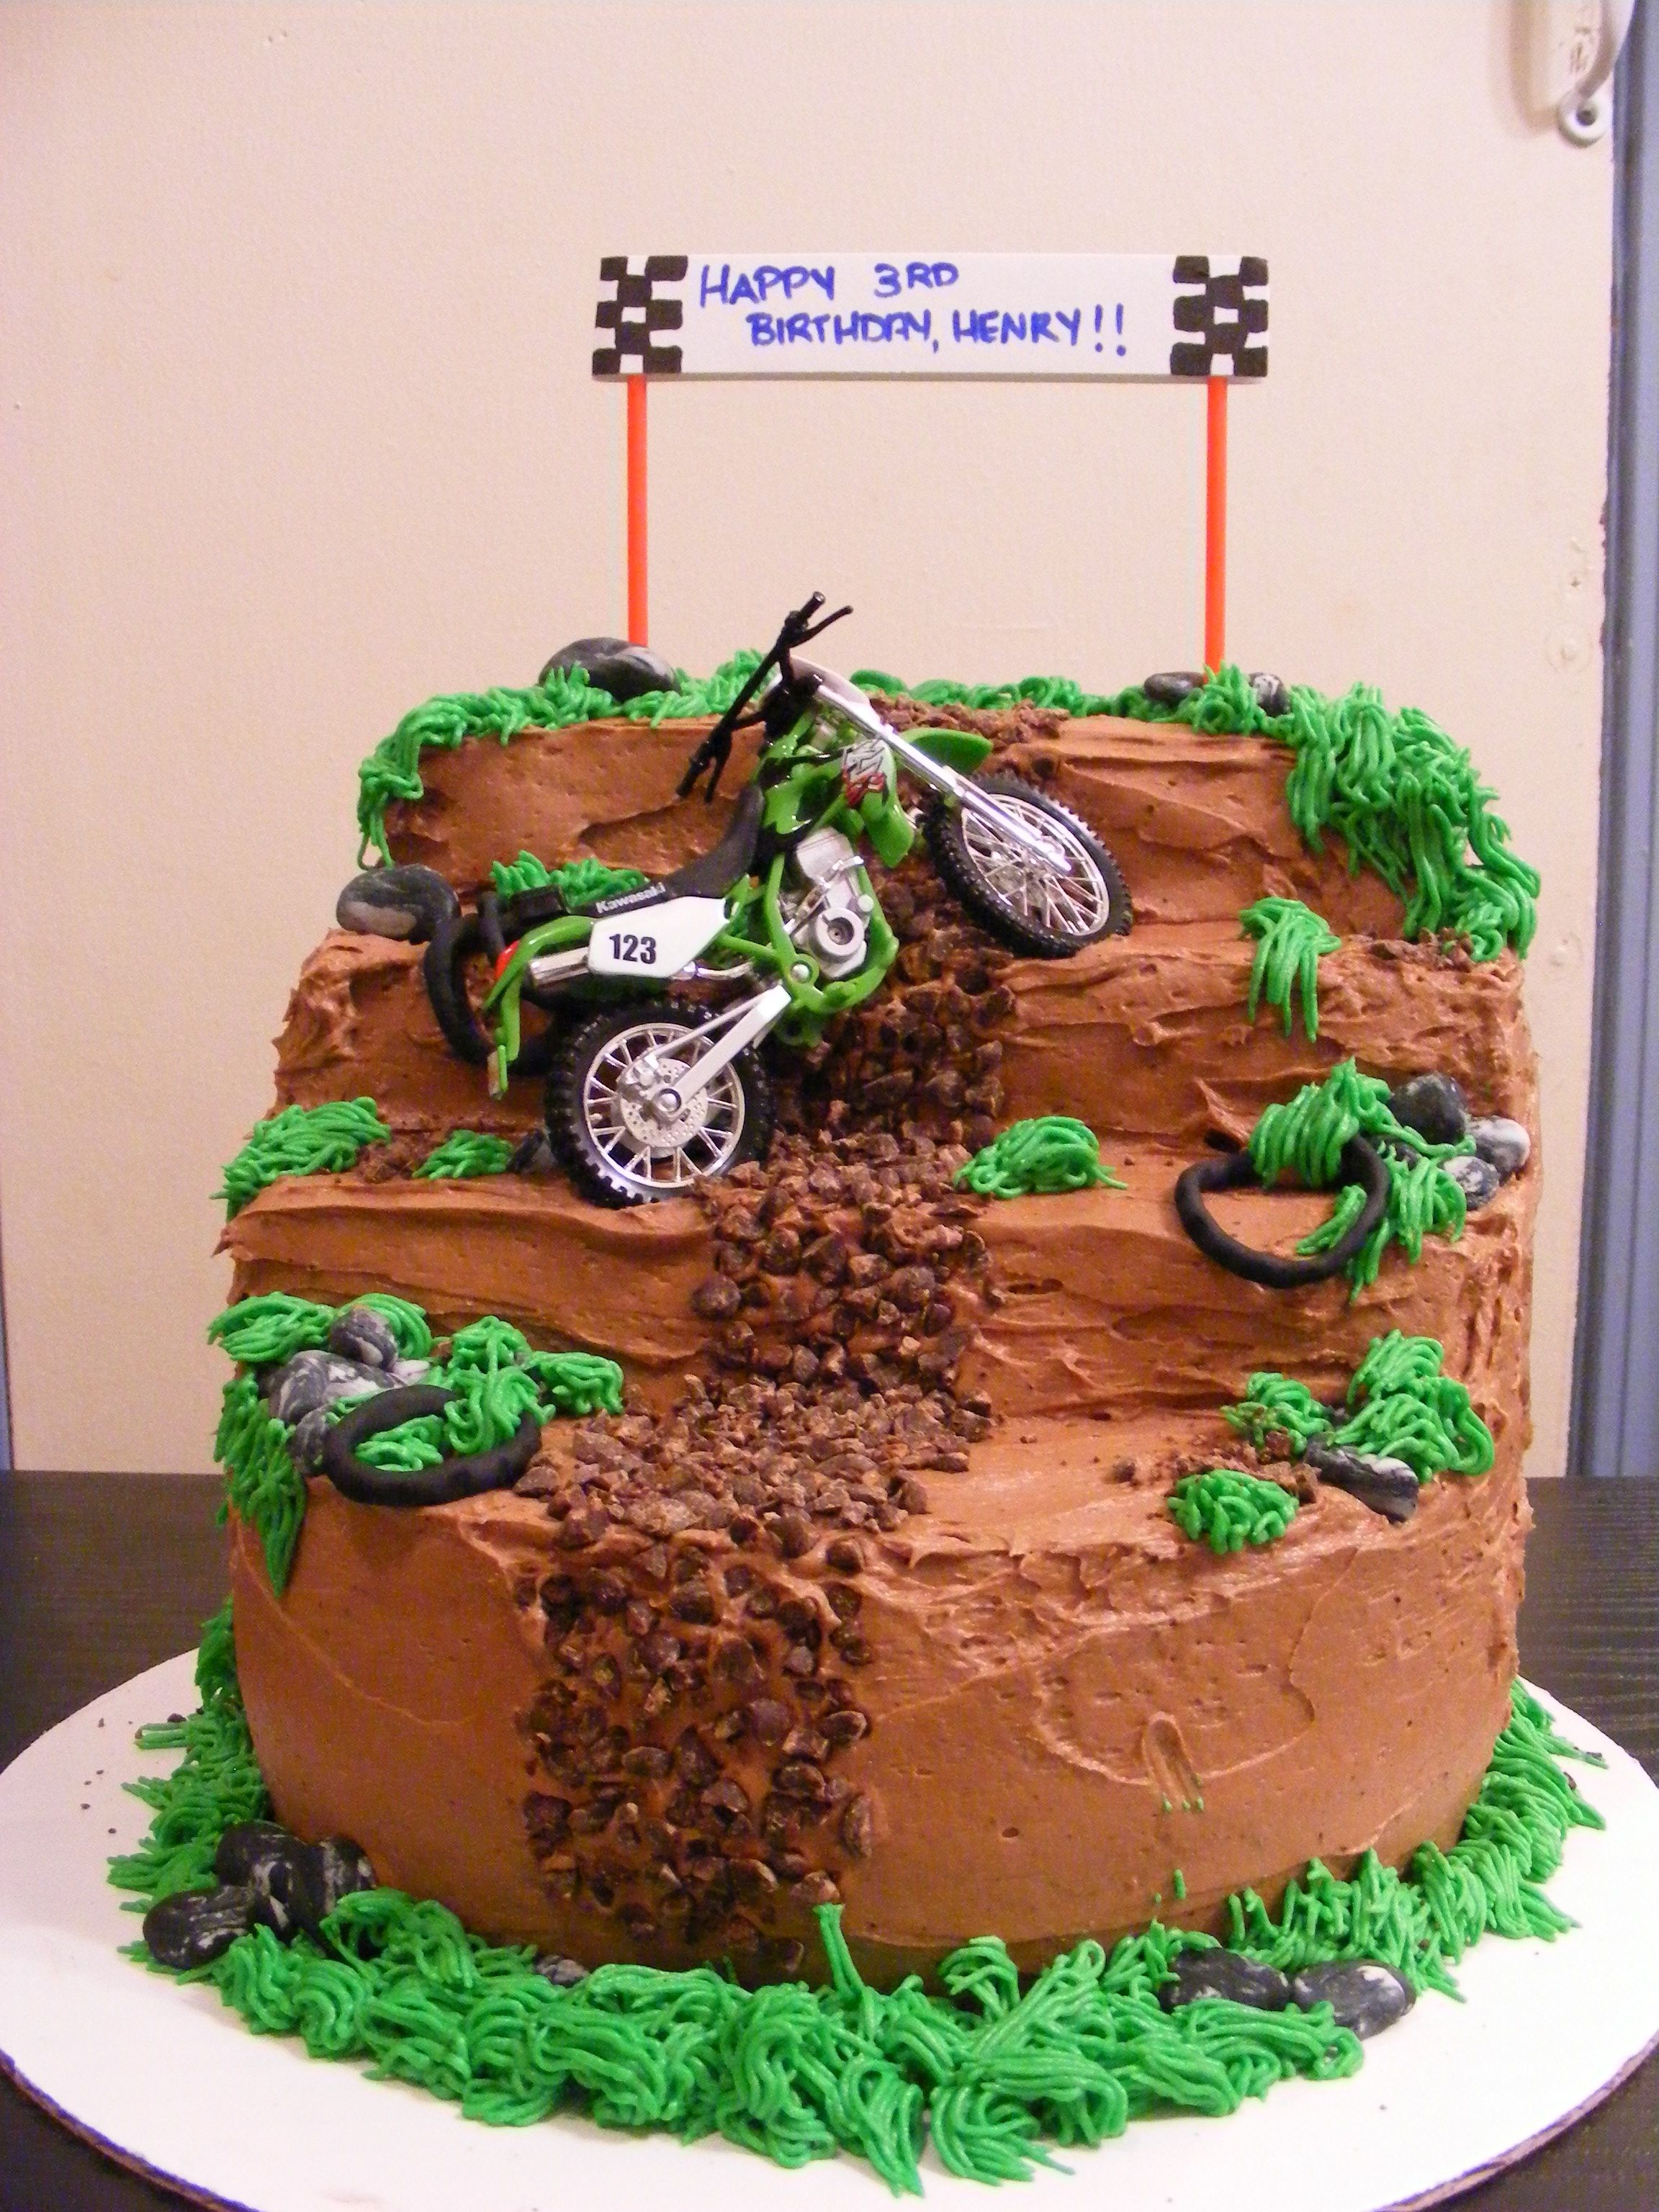 Dirt Bike Track This was a birthday cake for a young man who loves